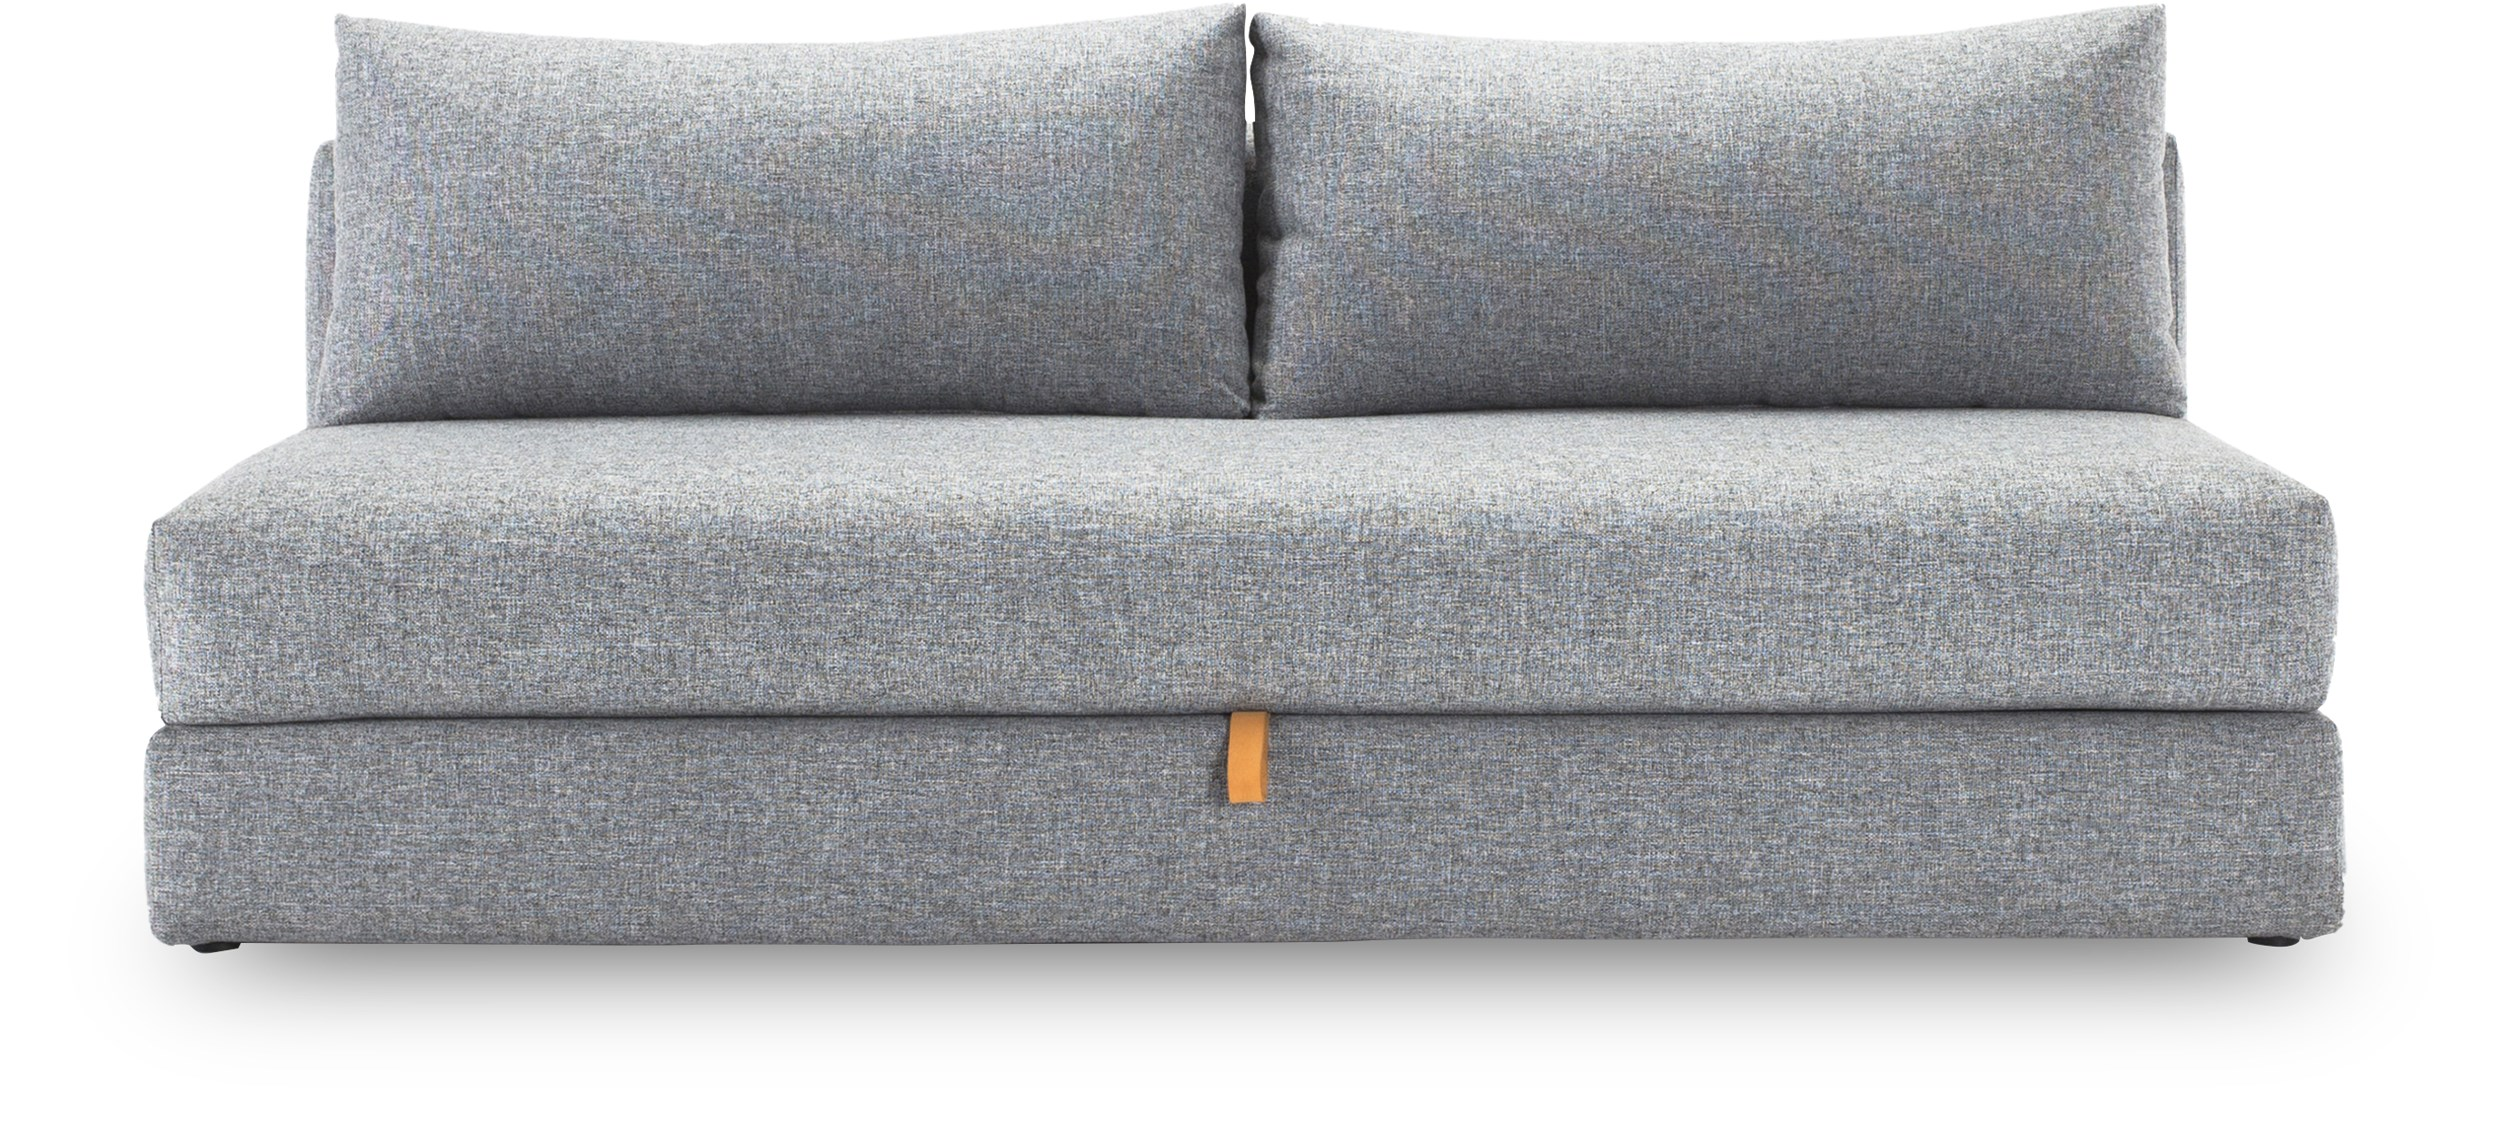 Innovation Living - Osvald de luxe Sovesofa - Twist 565 Granite, pocketspring/hypersoft skummadras og magasin med læderstrop